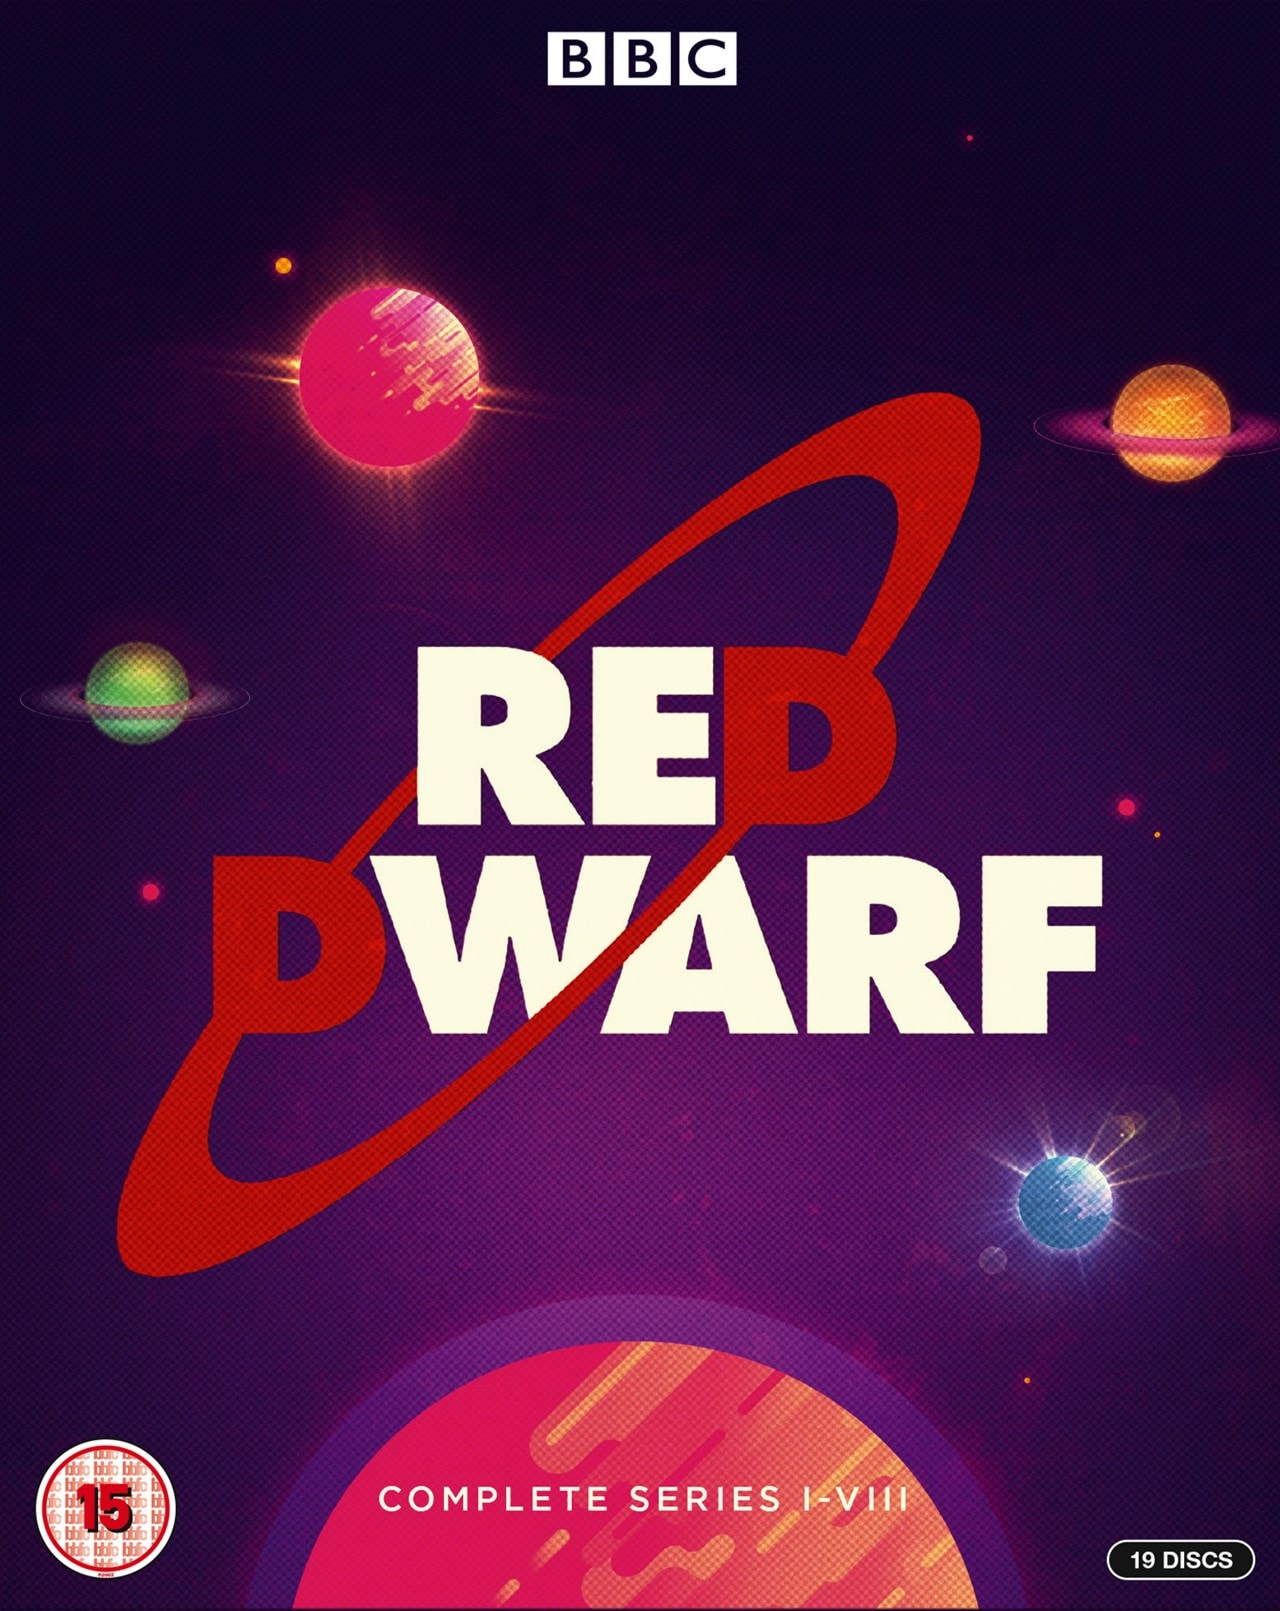 Red Dwarf: Complete Series I-VIII - 1